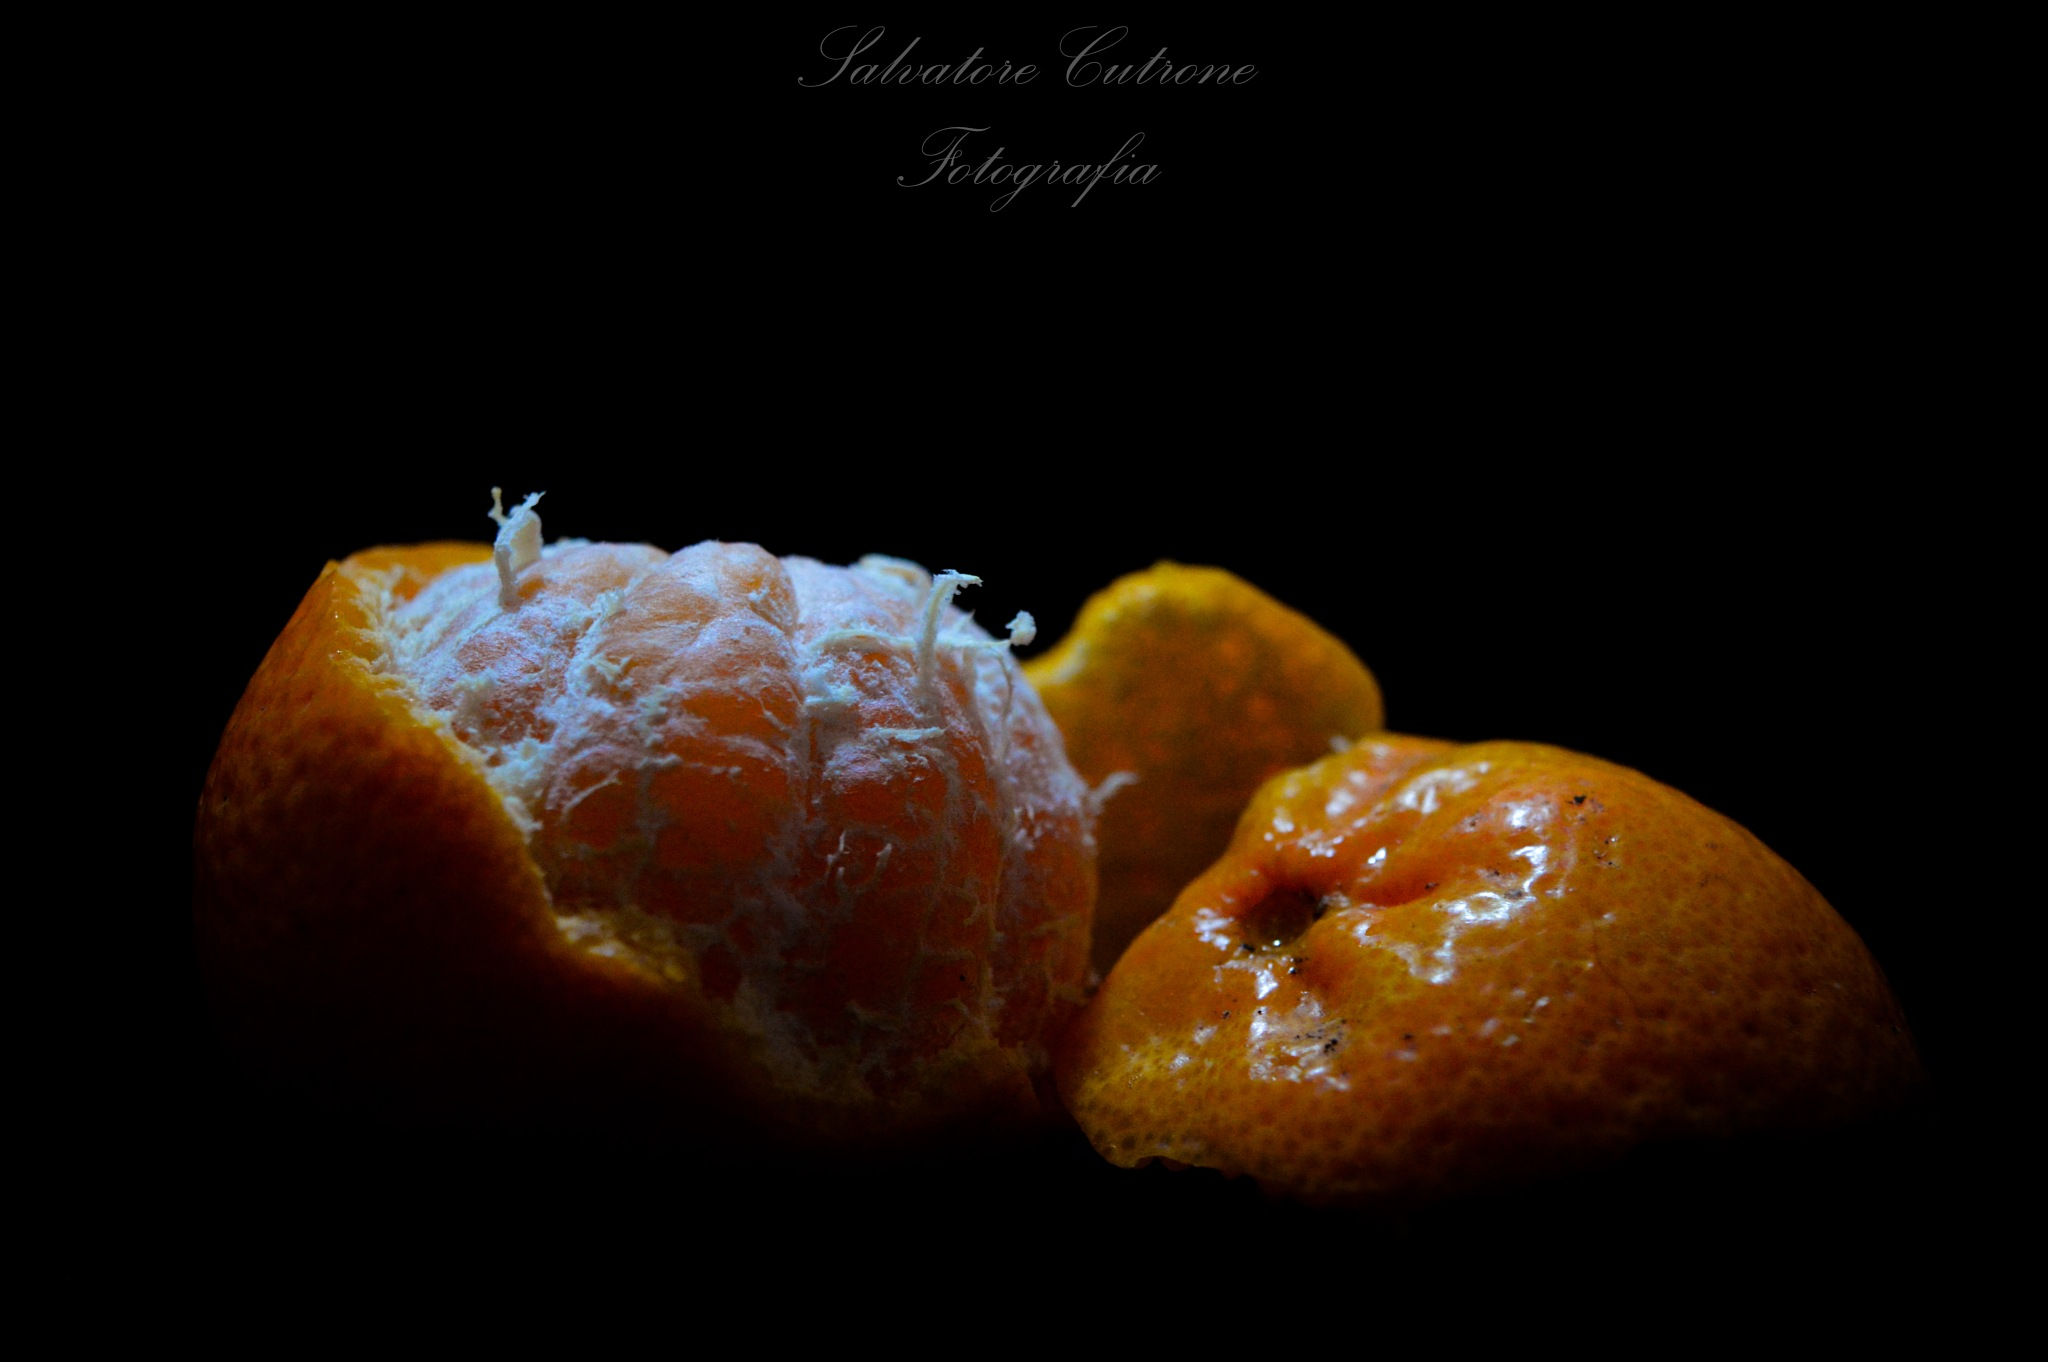 mandarin orange by Salvatore Cutrone